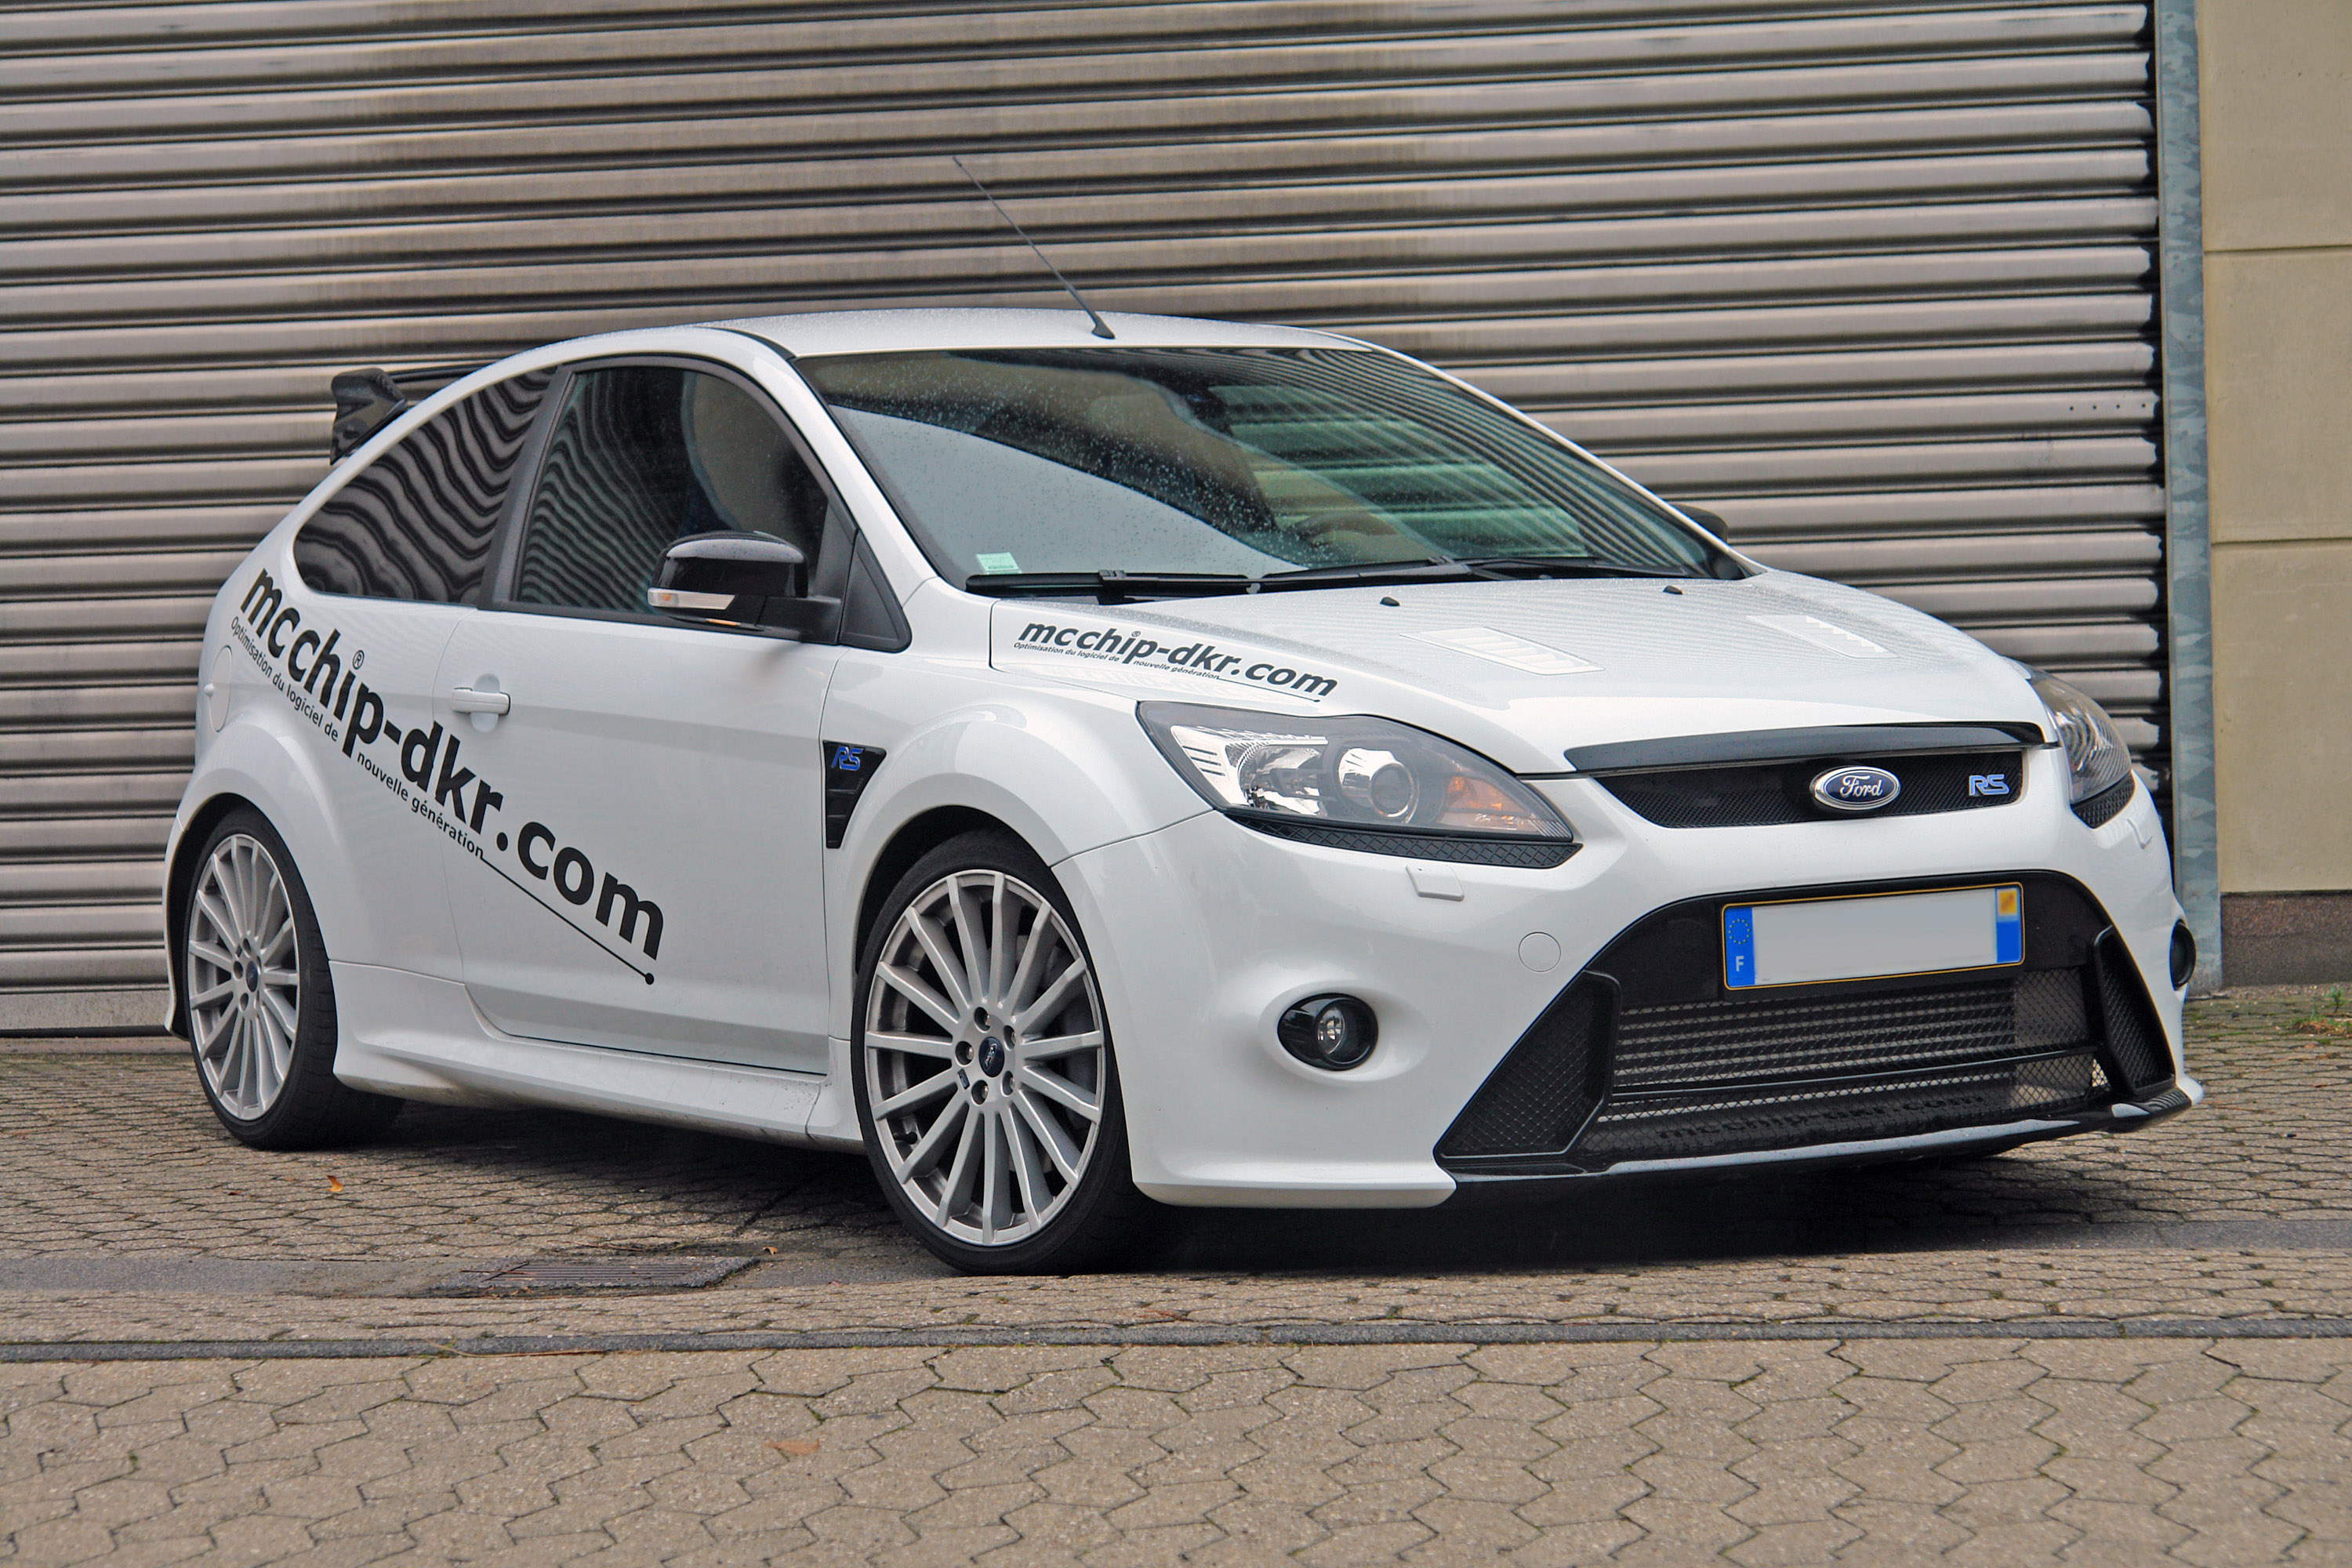 Focus Rs Hp >> Mcchip Dkr Offers Ford Focus Rs With 401 Hp